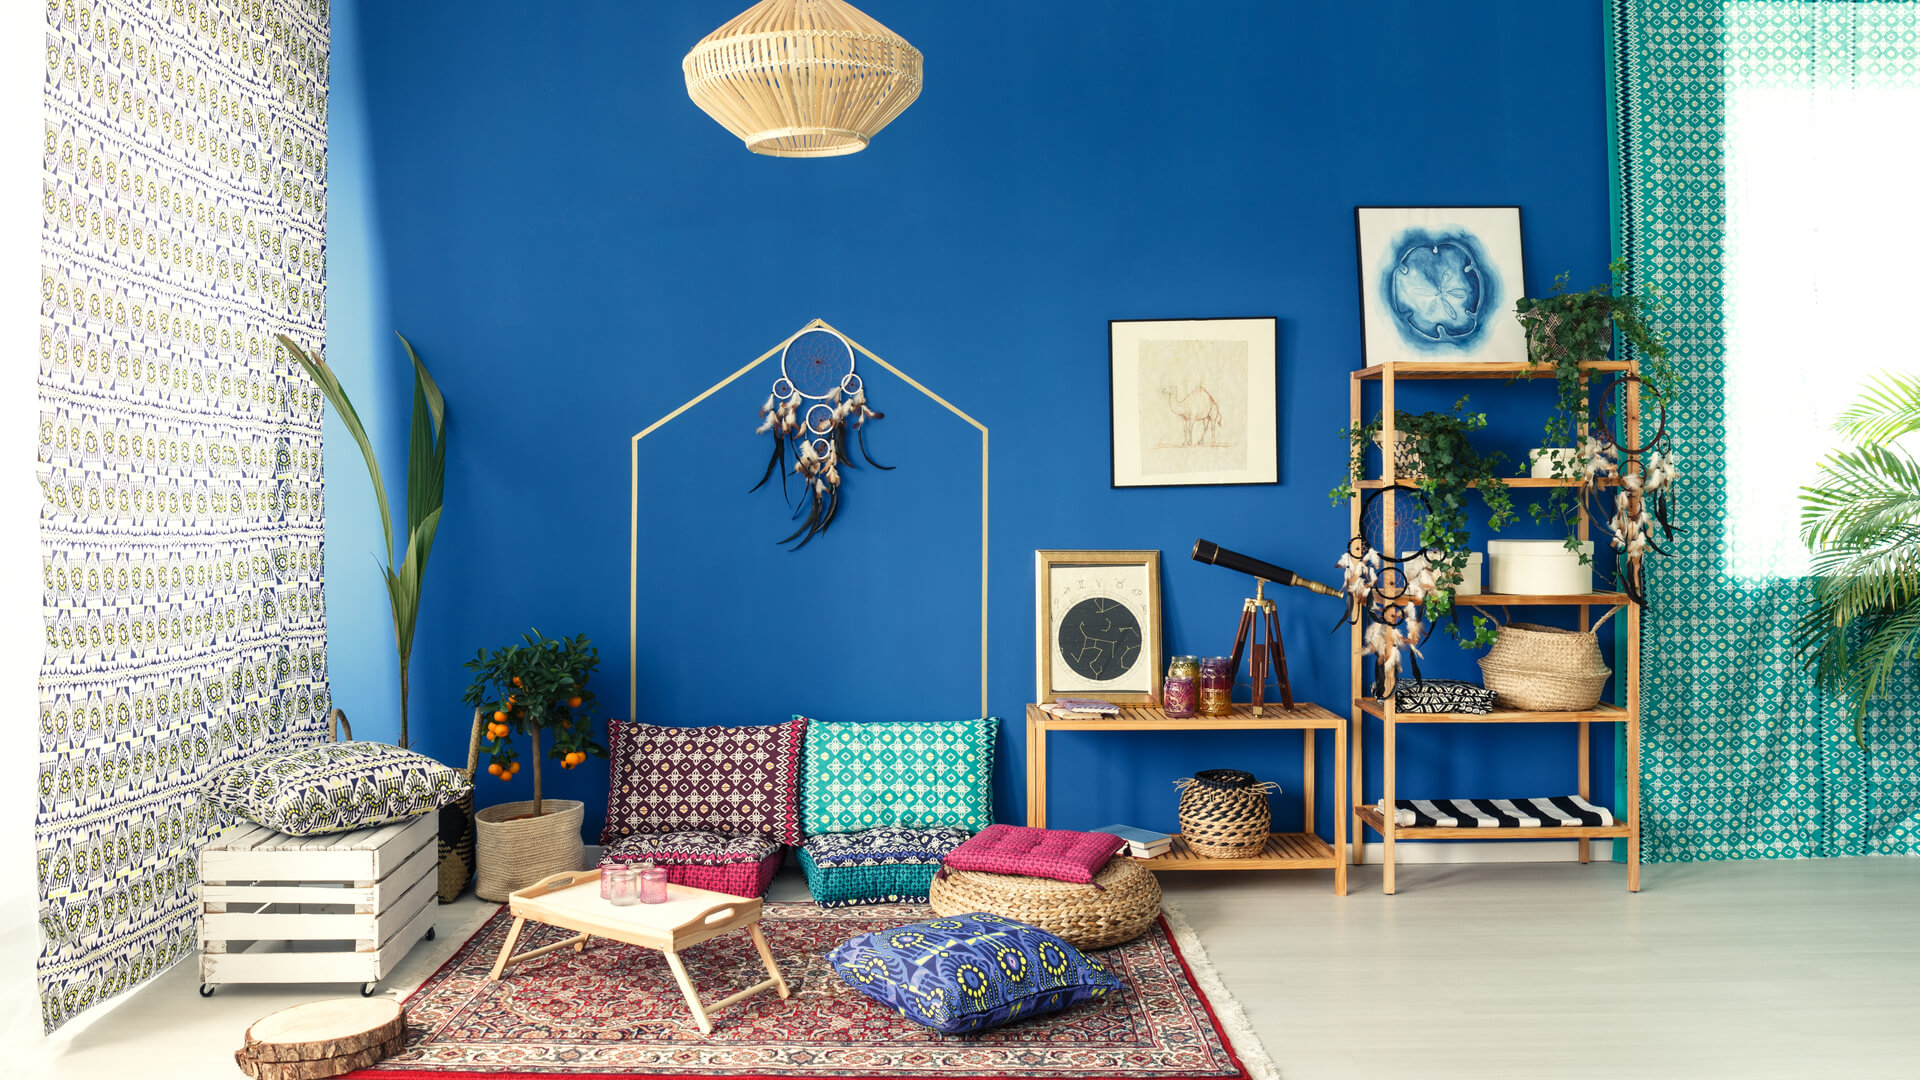 Great tips to create a Bohemian inspired interior design!